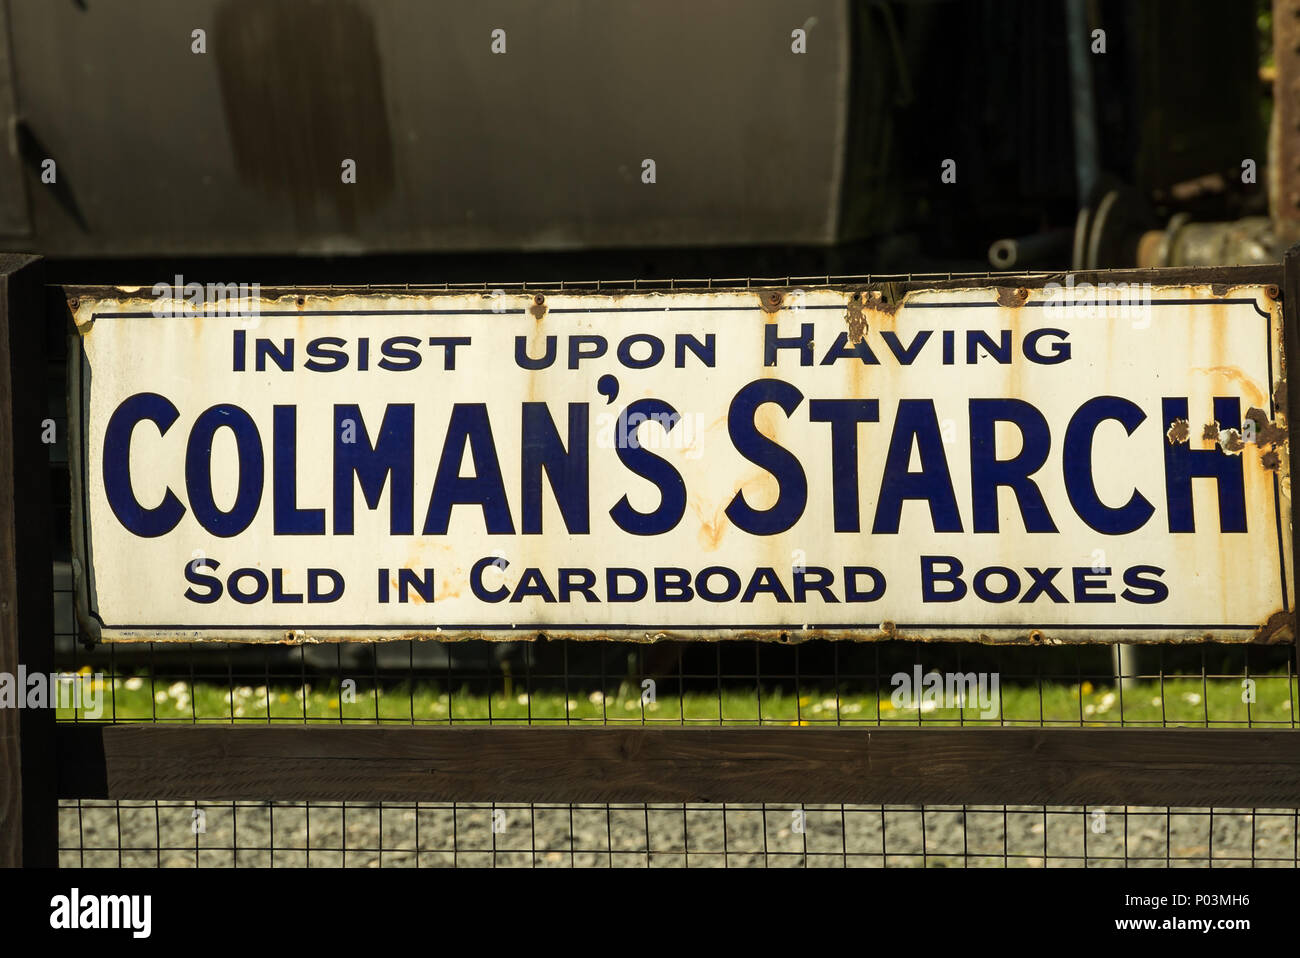 Colman's Starch original advertising sign, now preserved, on display at one of the Severn Valley Railway stations. - Stock Image